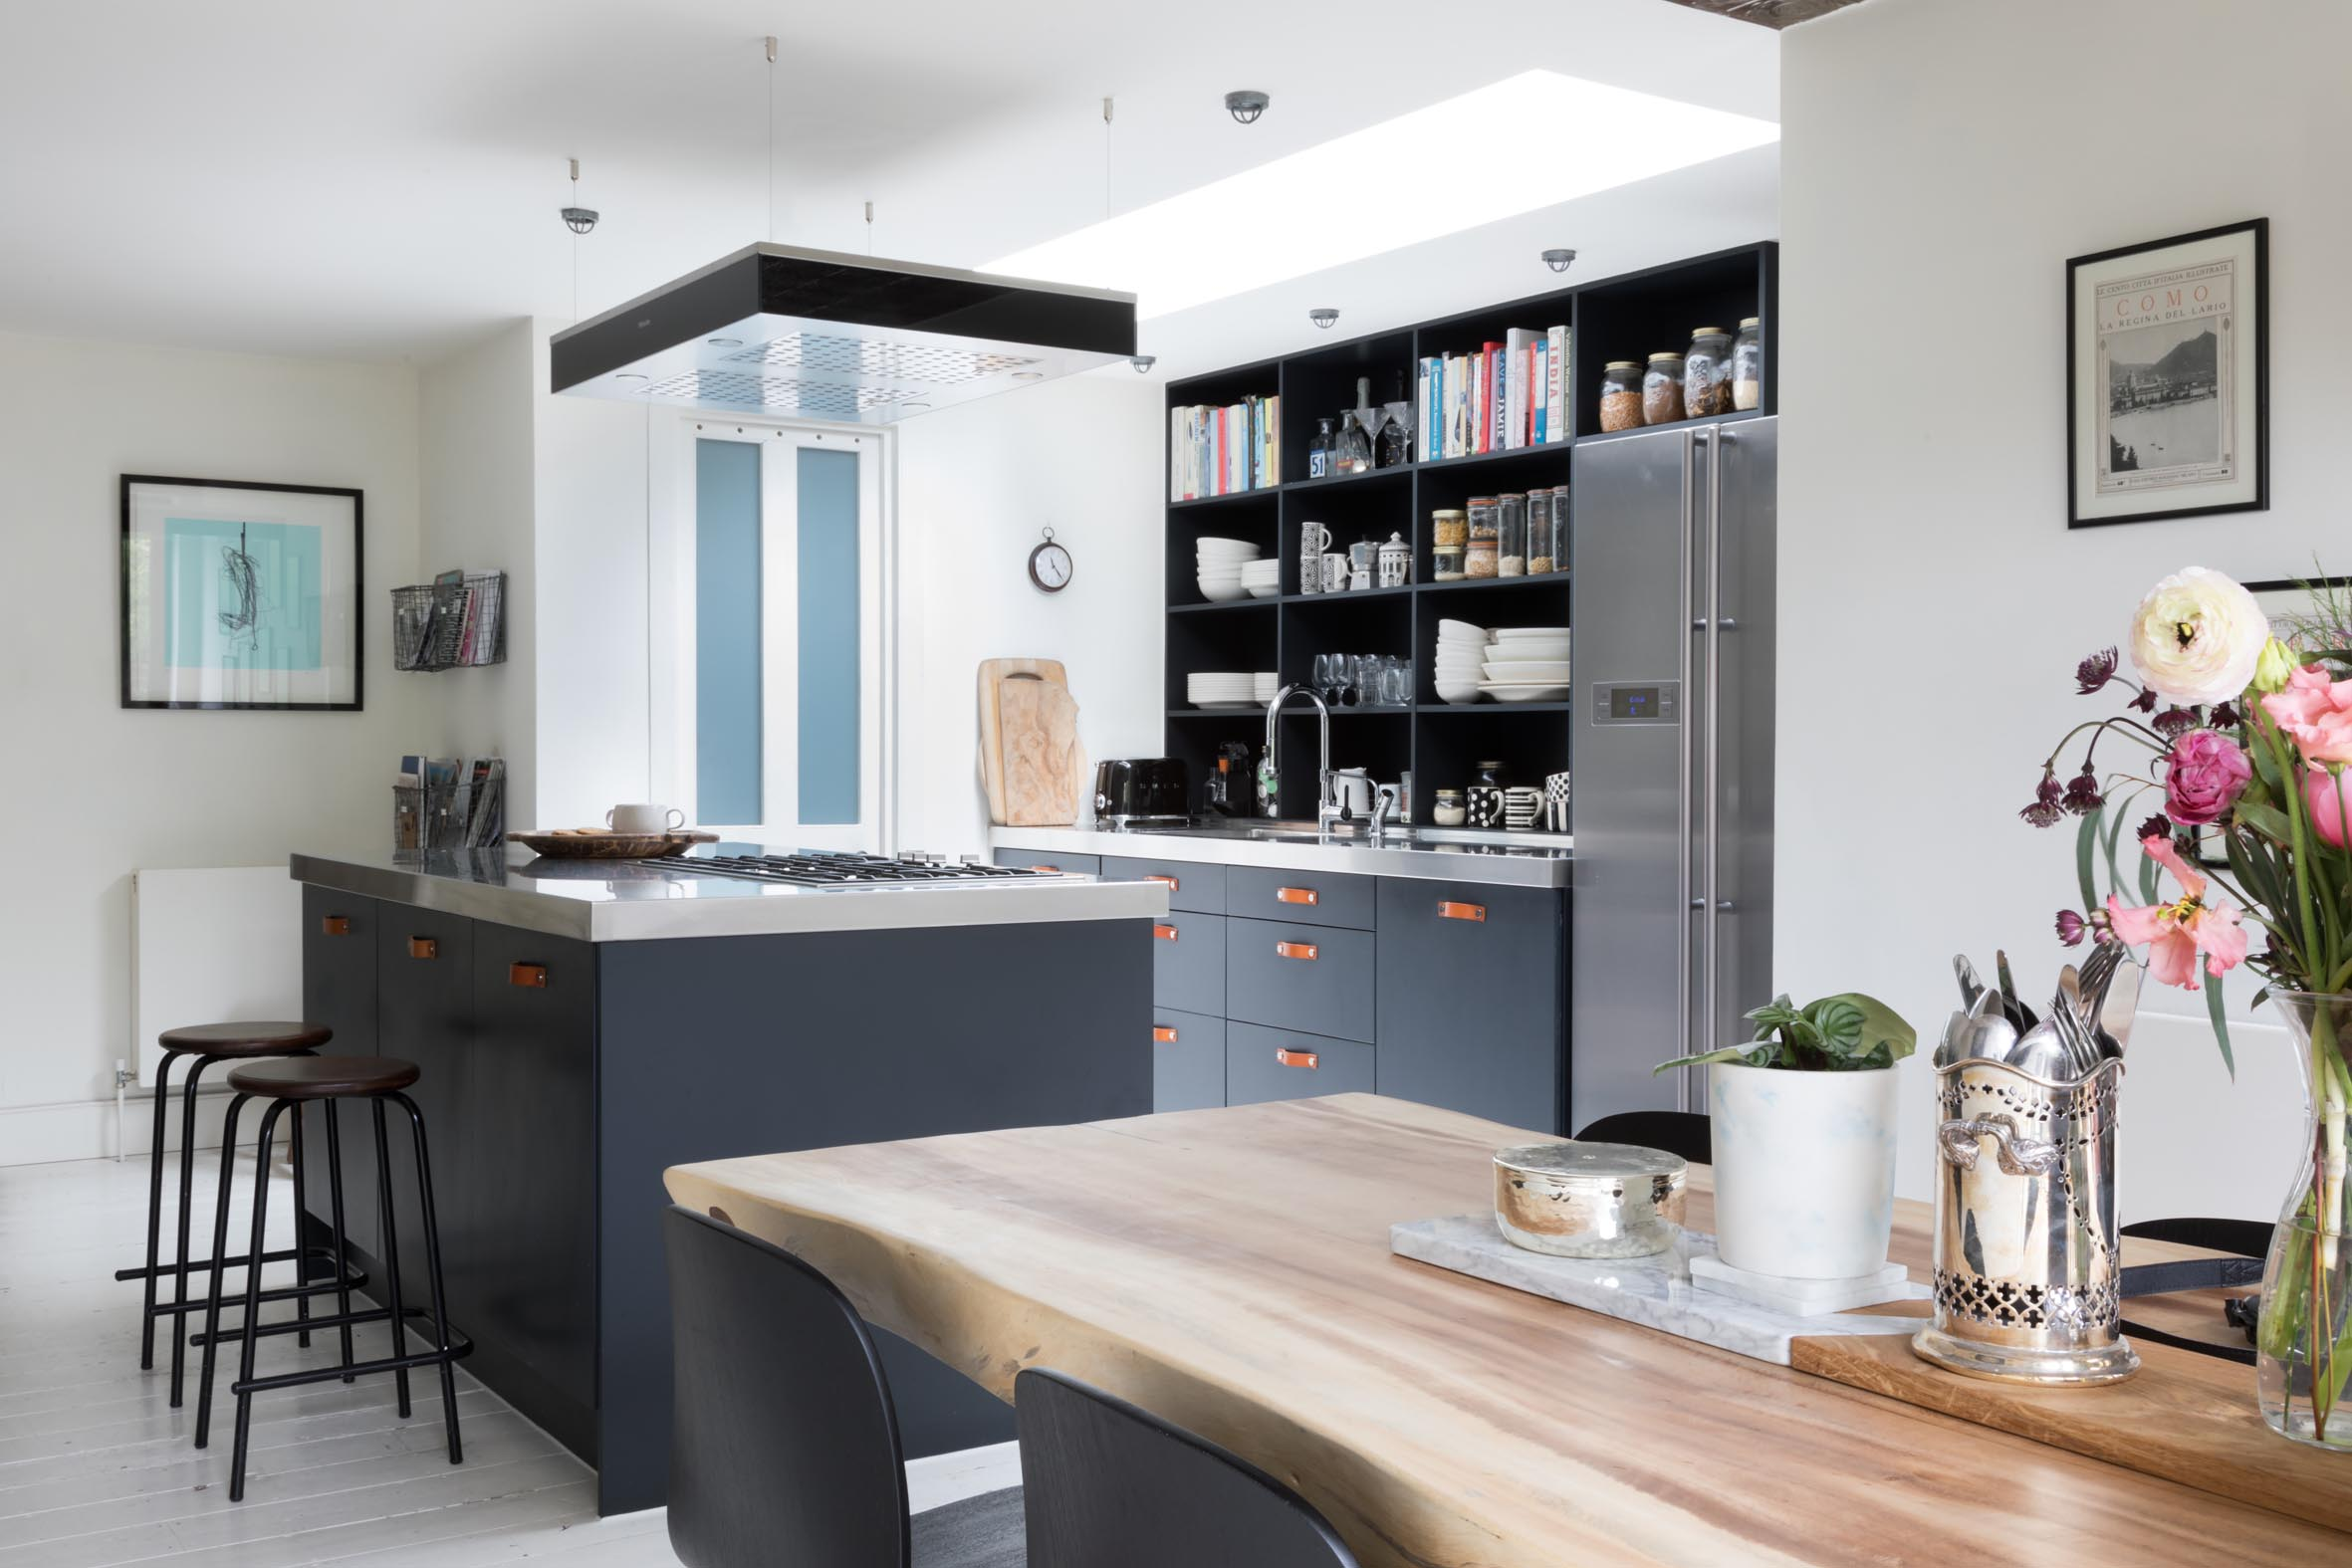 Miele Kitchen Redesign Kate Watson-Smyth